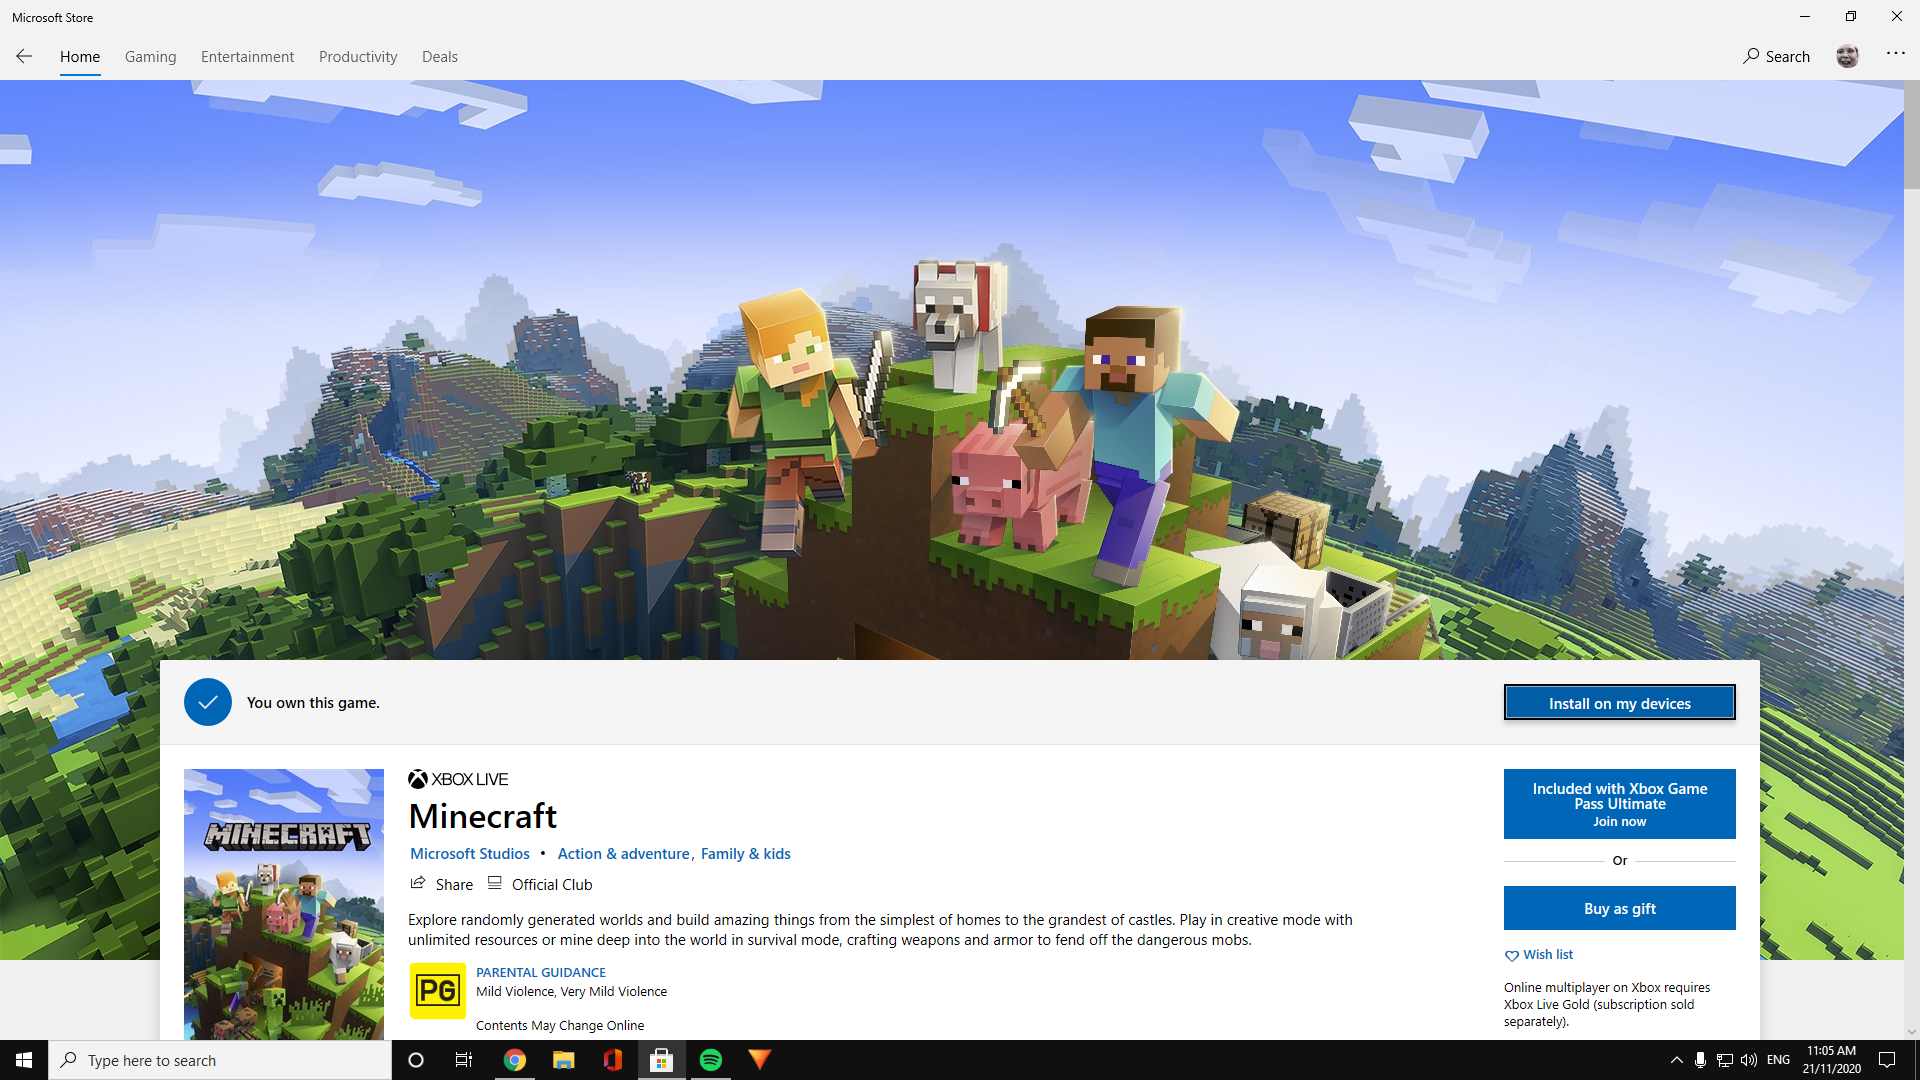 Unable to install Minecraft, although its been owned on my previous Xbox. 582cec1d-74d3-40a1-8603-2af991c43de7?upload=true.png